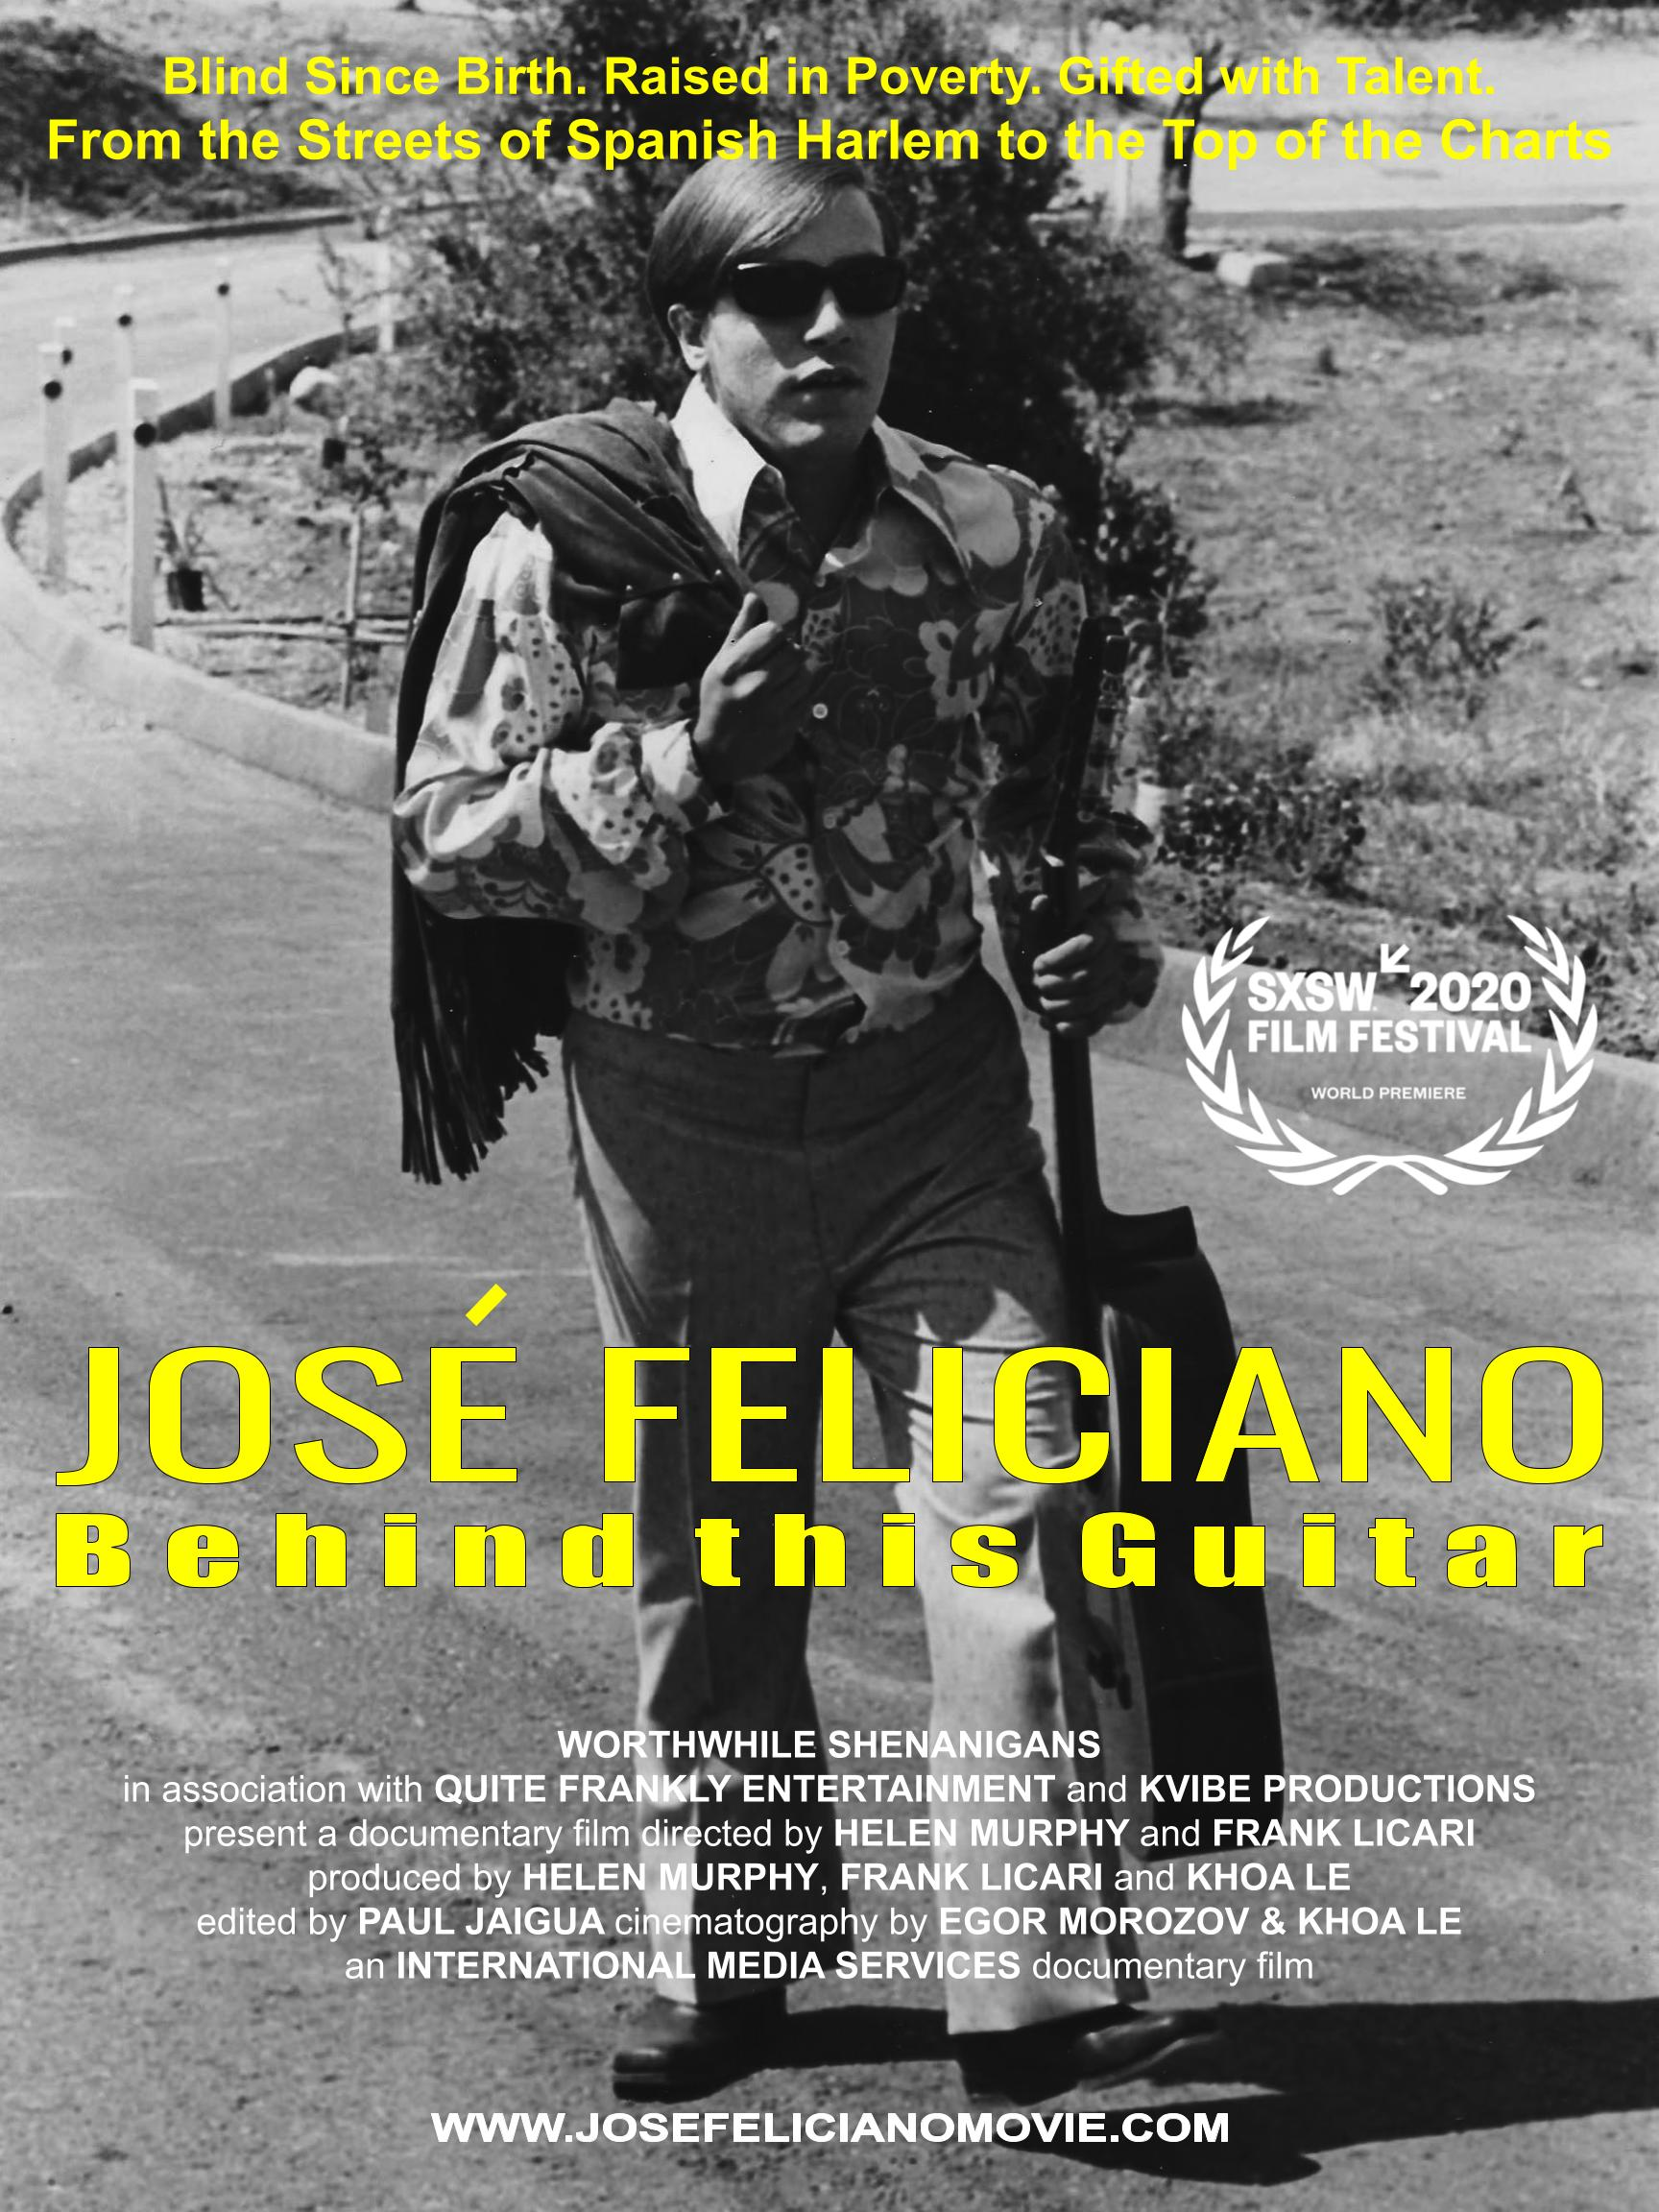 JOSE FELICIANO - Behind This Guitar (2020) - IMDb